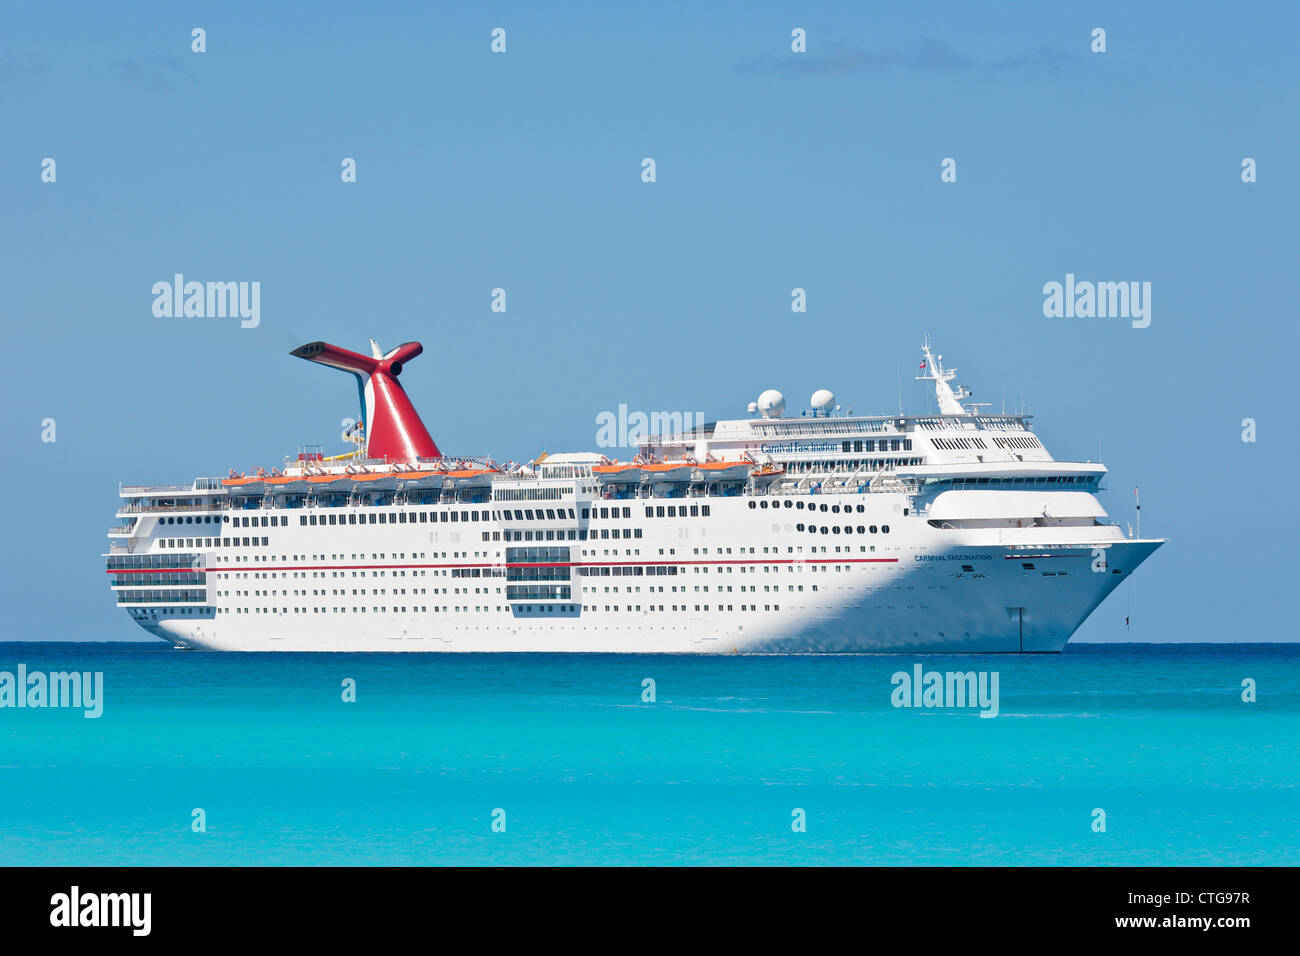 Carnival Fascination ship moored at Half Moon Cay, Bahamas - Stock Image